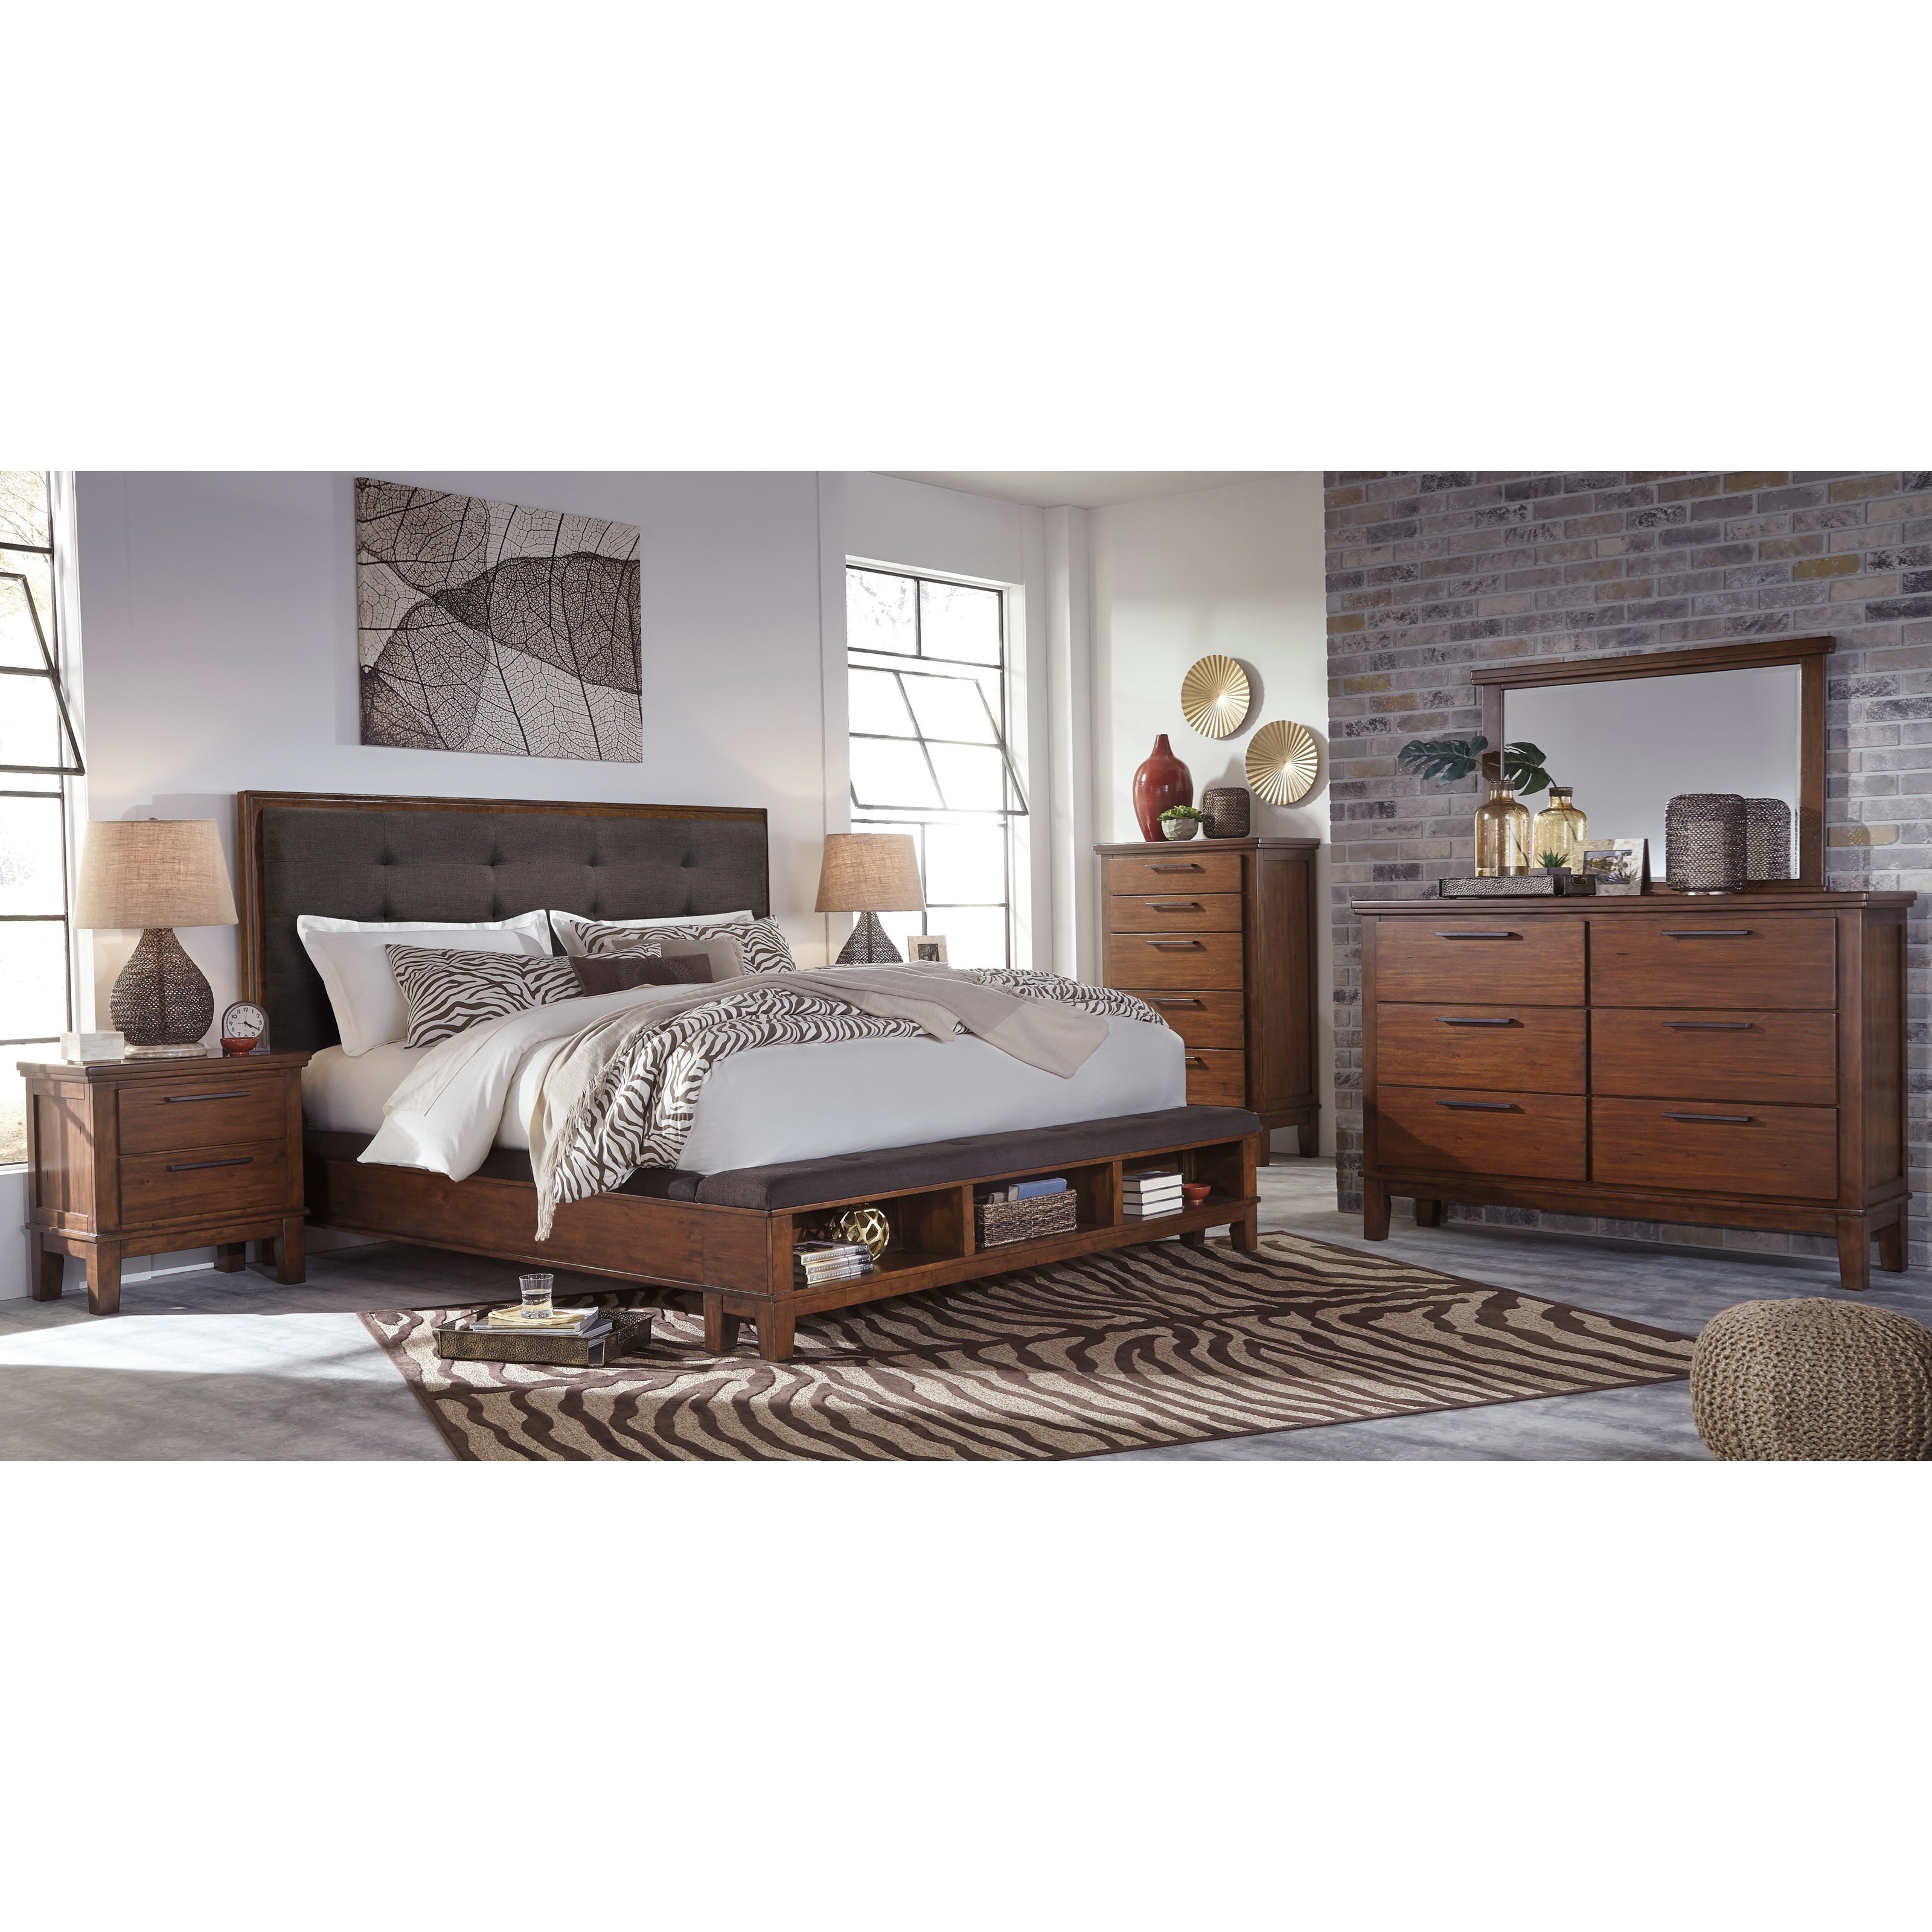 Ralene King Bedroom Group by Signature Design by Ashley at Northeast Factory Direct